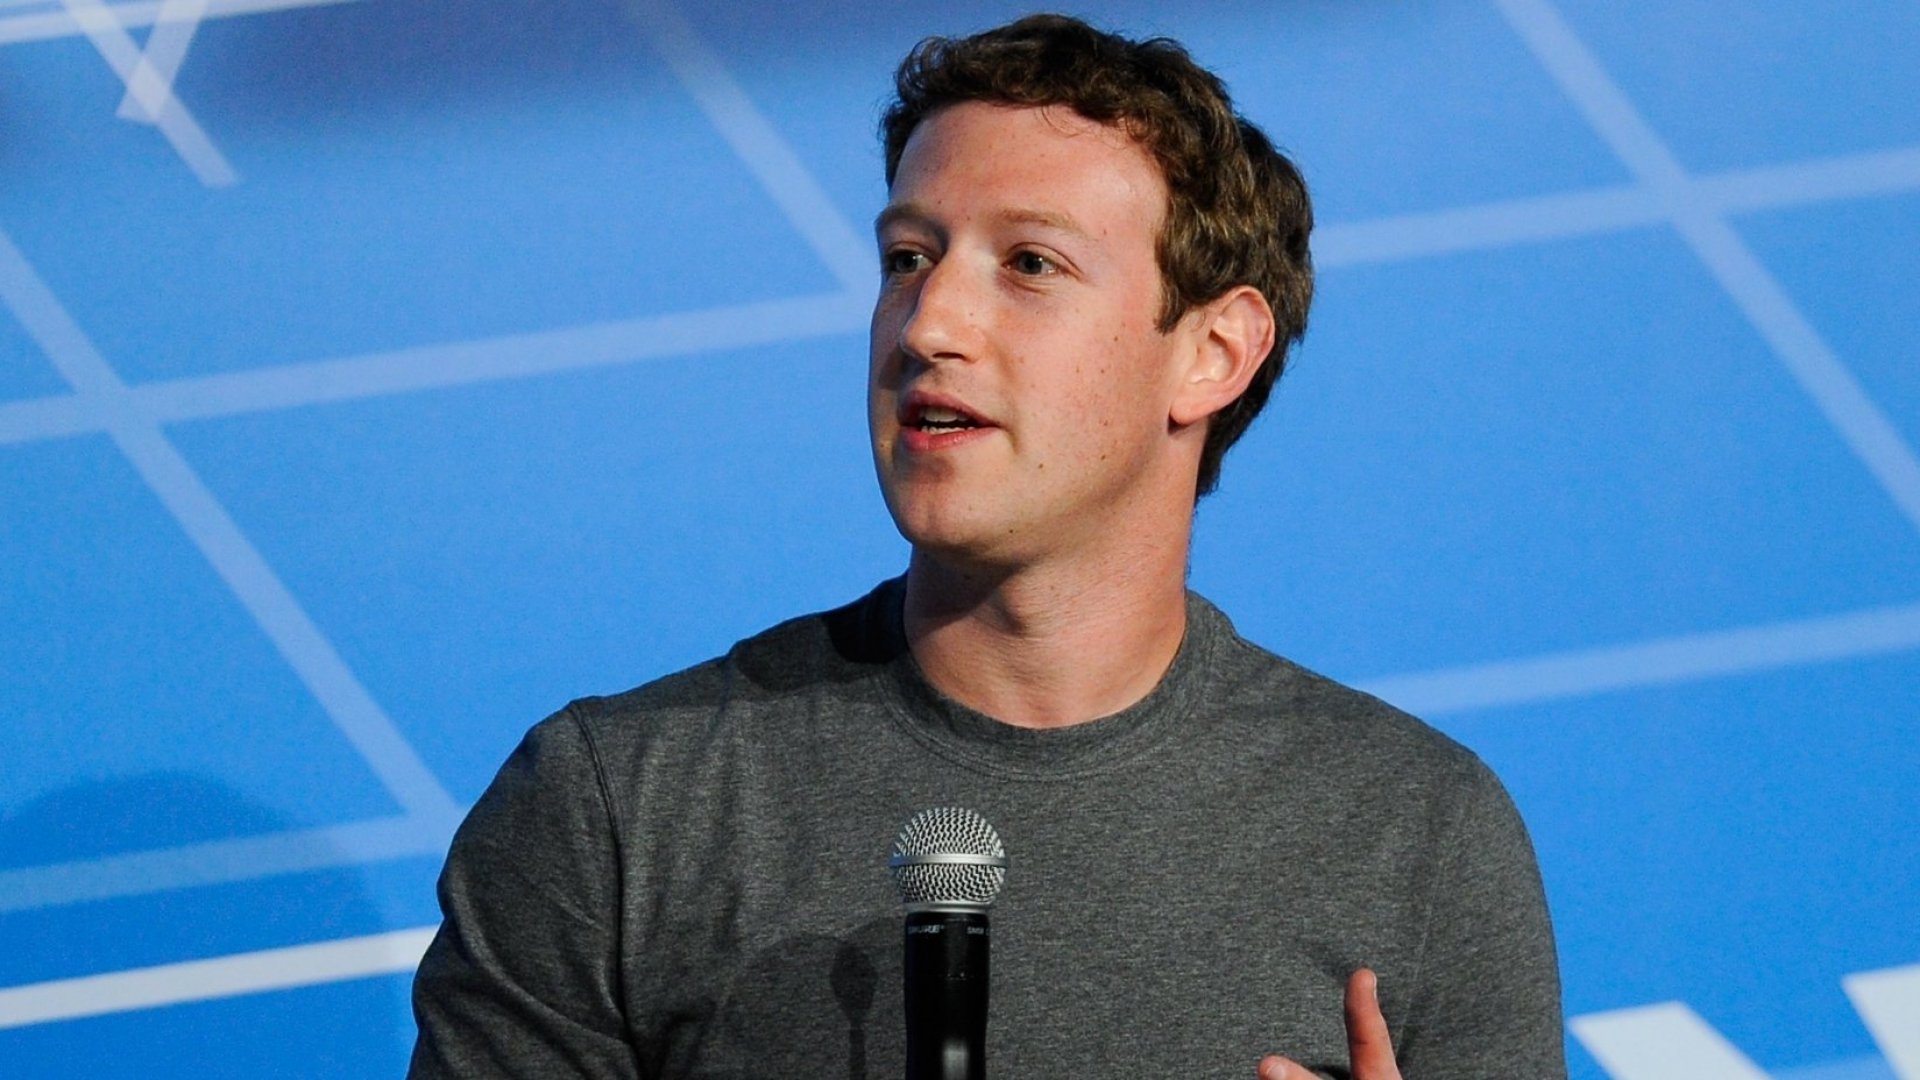 The Ambitious World Problems That Mark Zuckerberg Wants to Help Solve